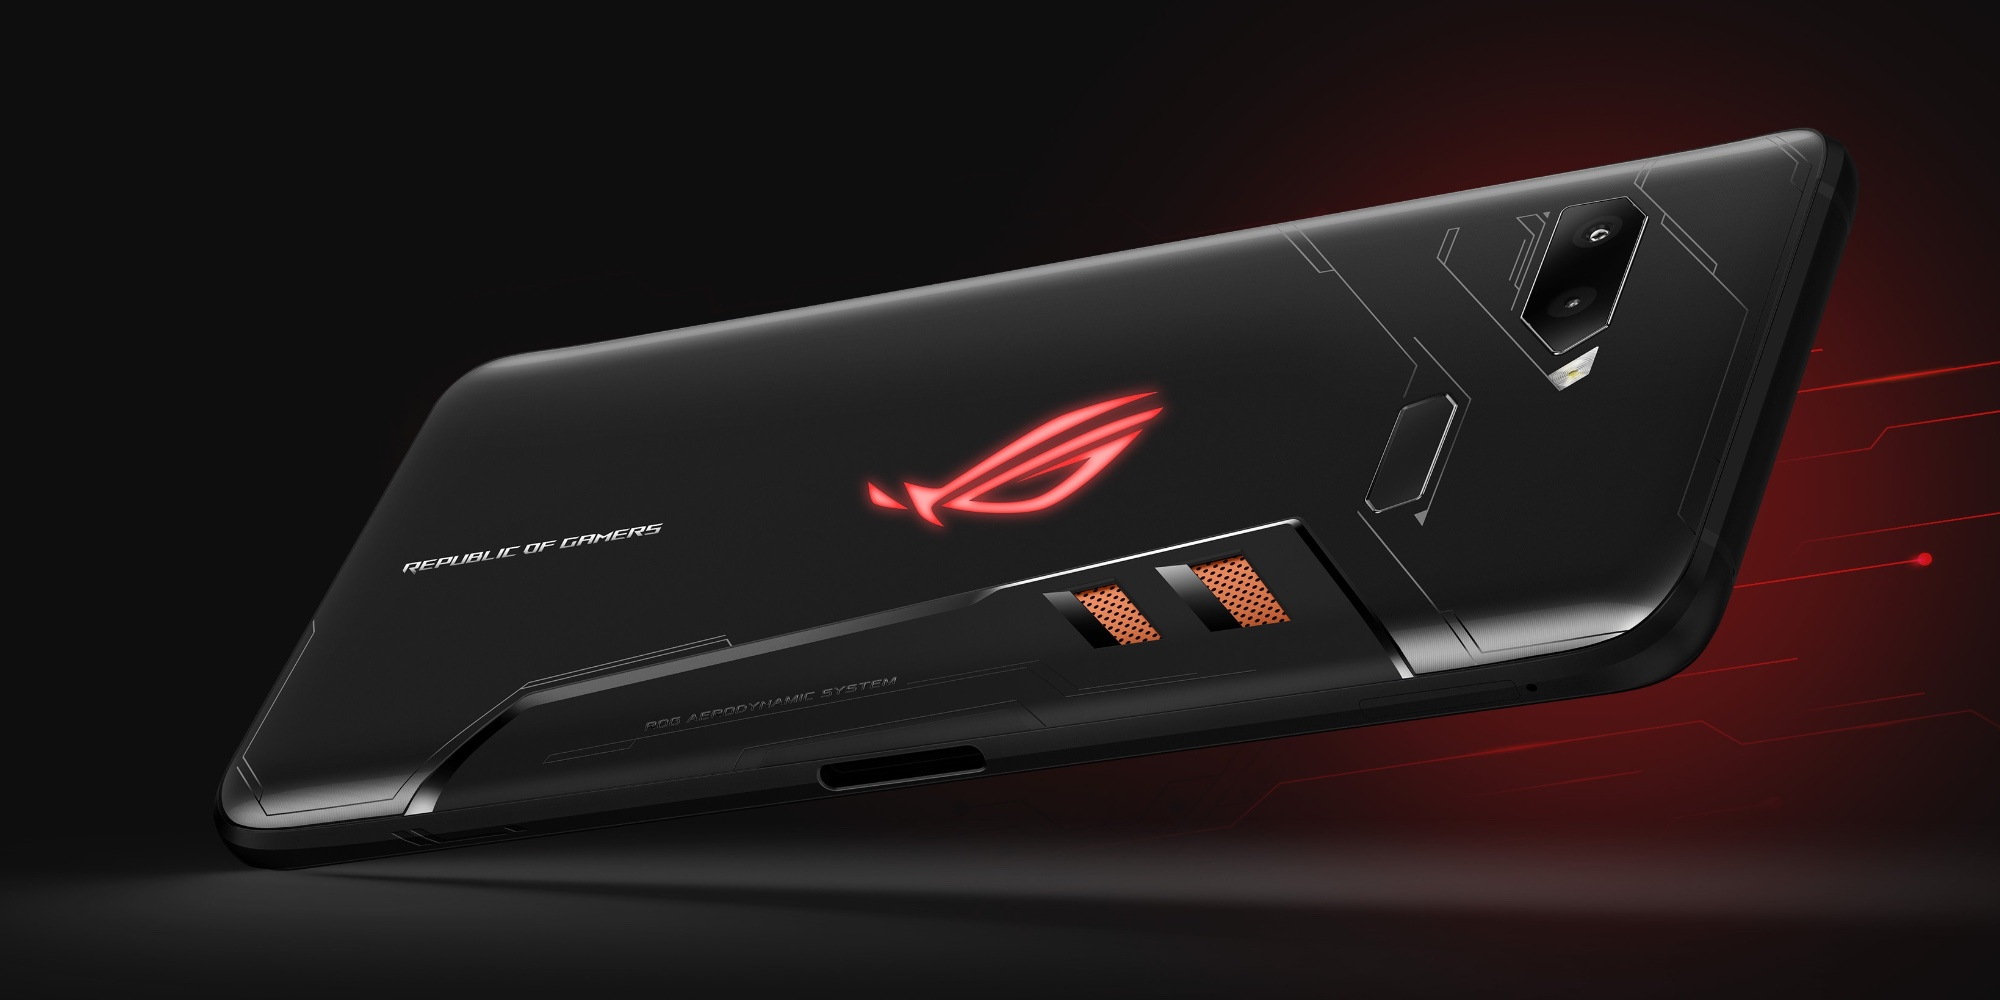 ASUS ROG Smartphone drops to $400 after $625 discount - 9to5Toys